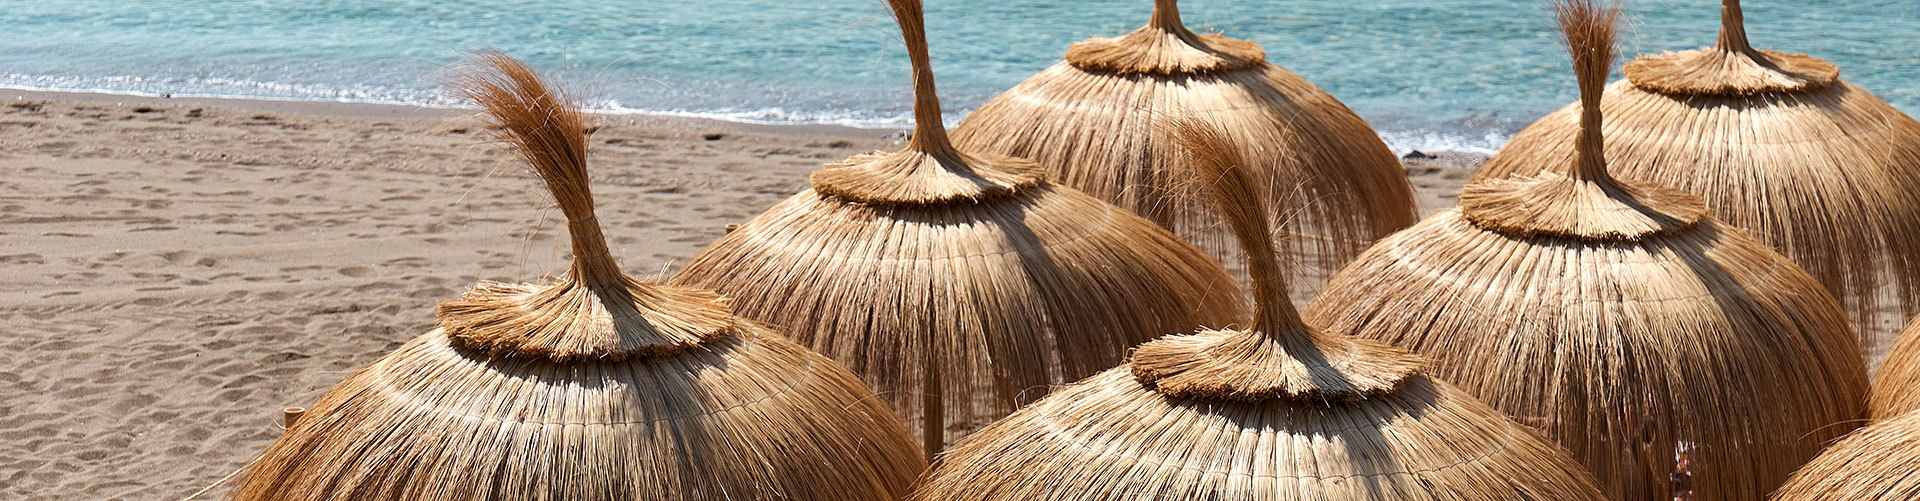 The Best Beach, Cabana & Sun Beds in Marbella - Mahiki Beach